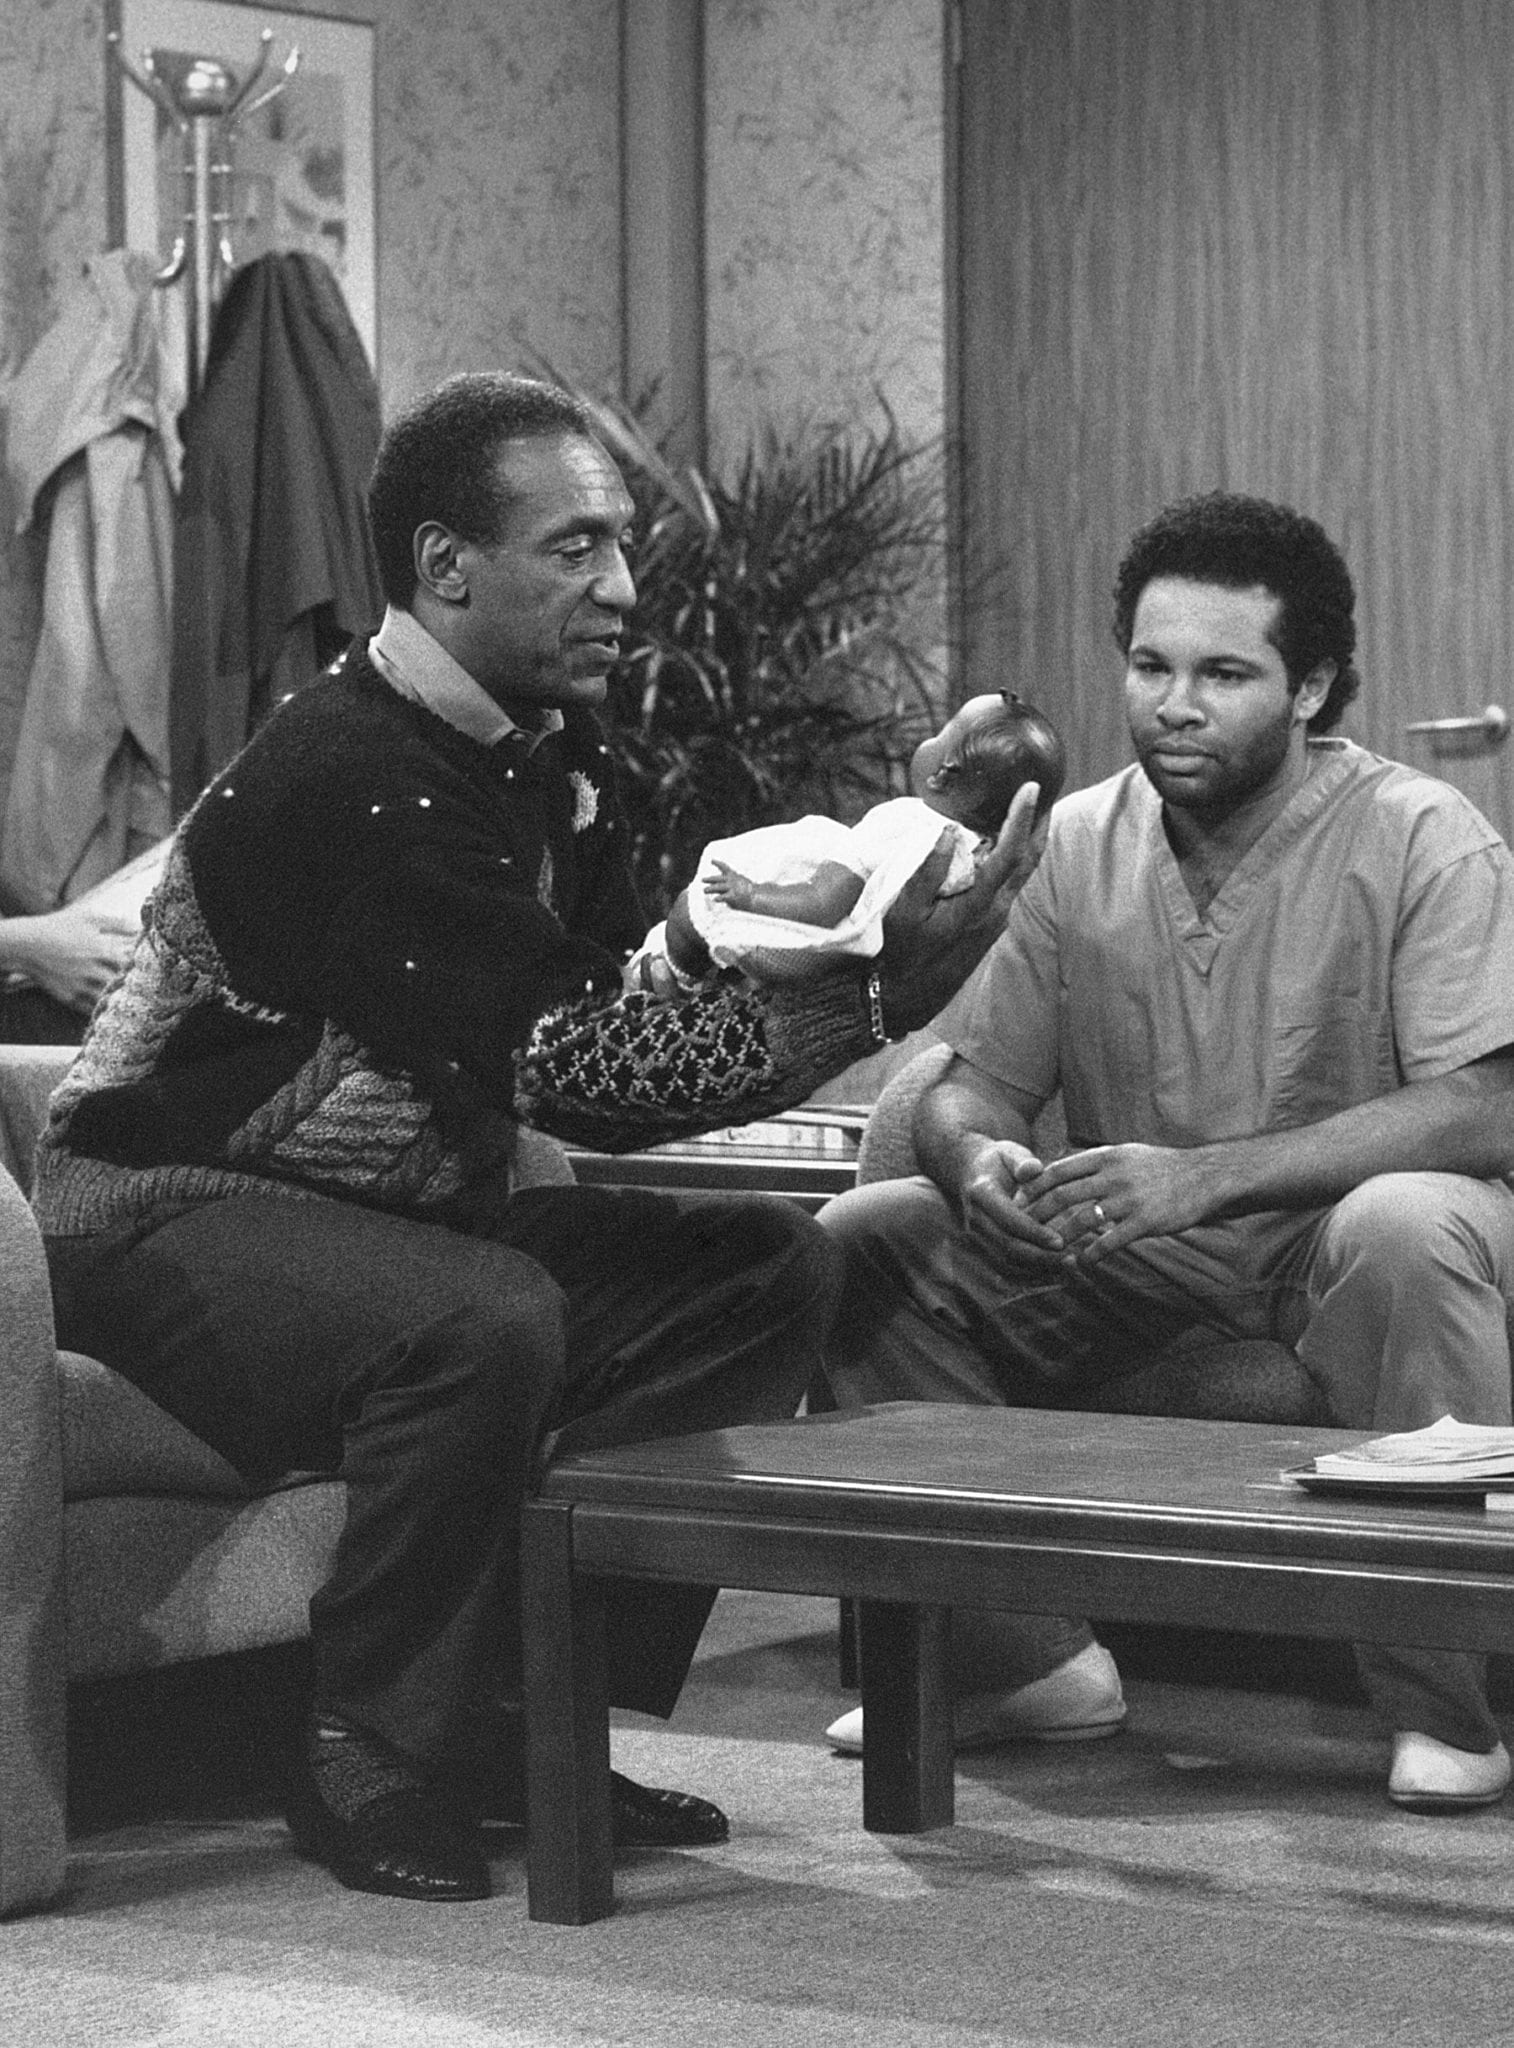 Cosby and Owens